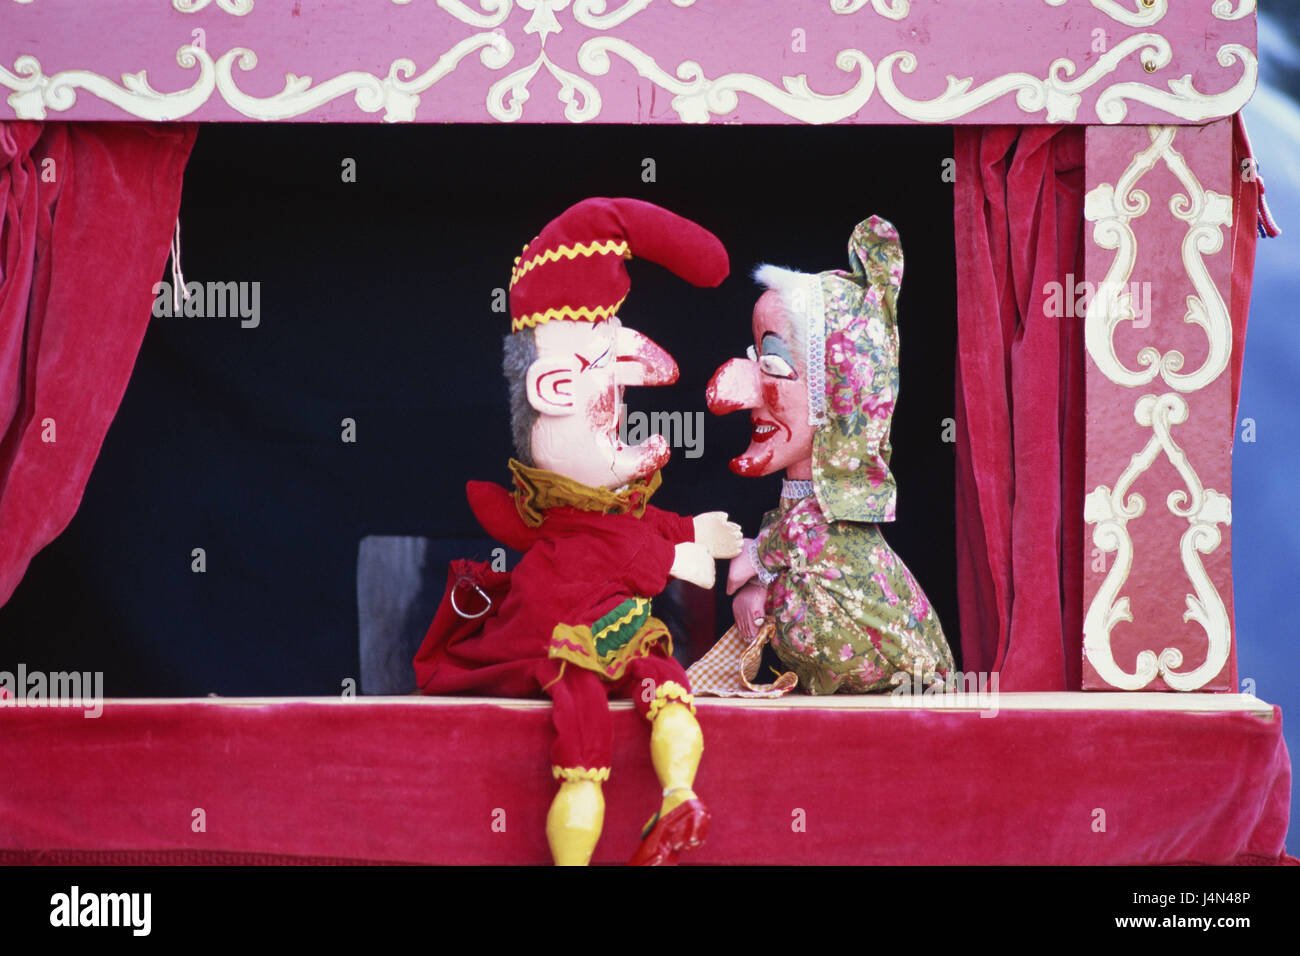 Puppet theatre, Kasperl, grandmother, - Stock Image